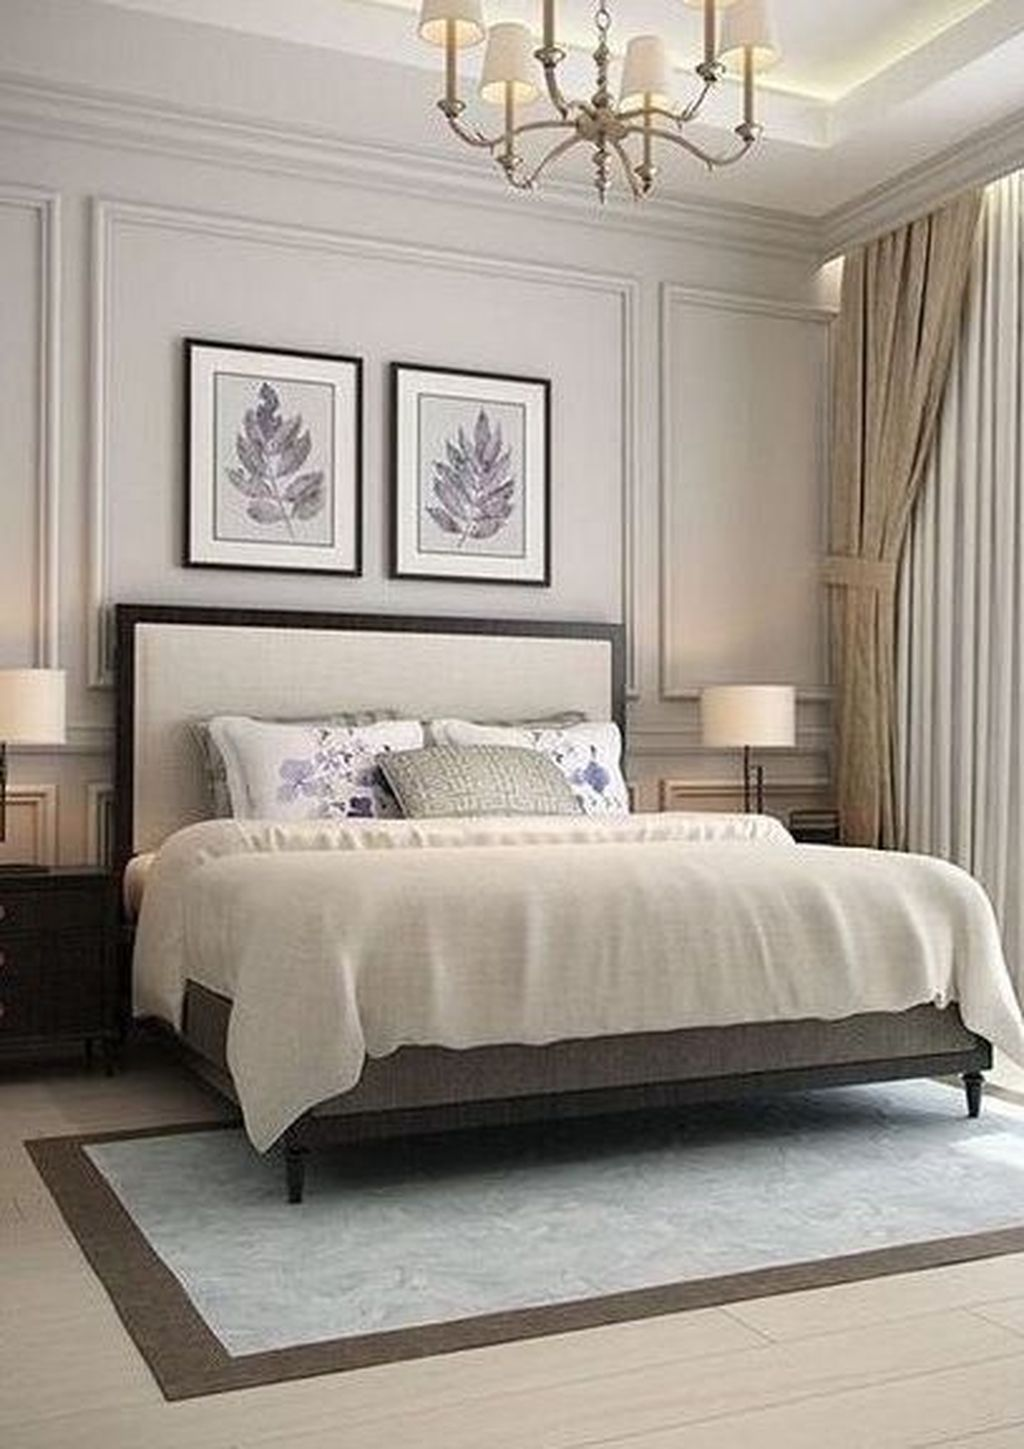 38 Best Master Bedroom Design Trends Ideas That You Need To Know In 2020 Luxury Bedroom Master Luxury Master Bedroom Design Luxurious Bedrooms